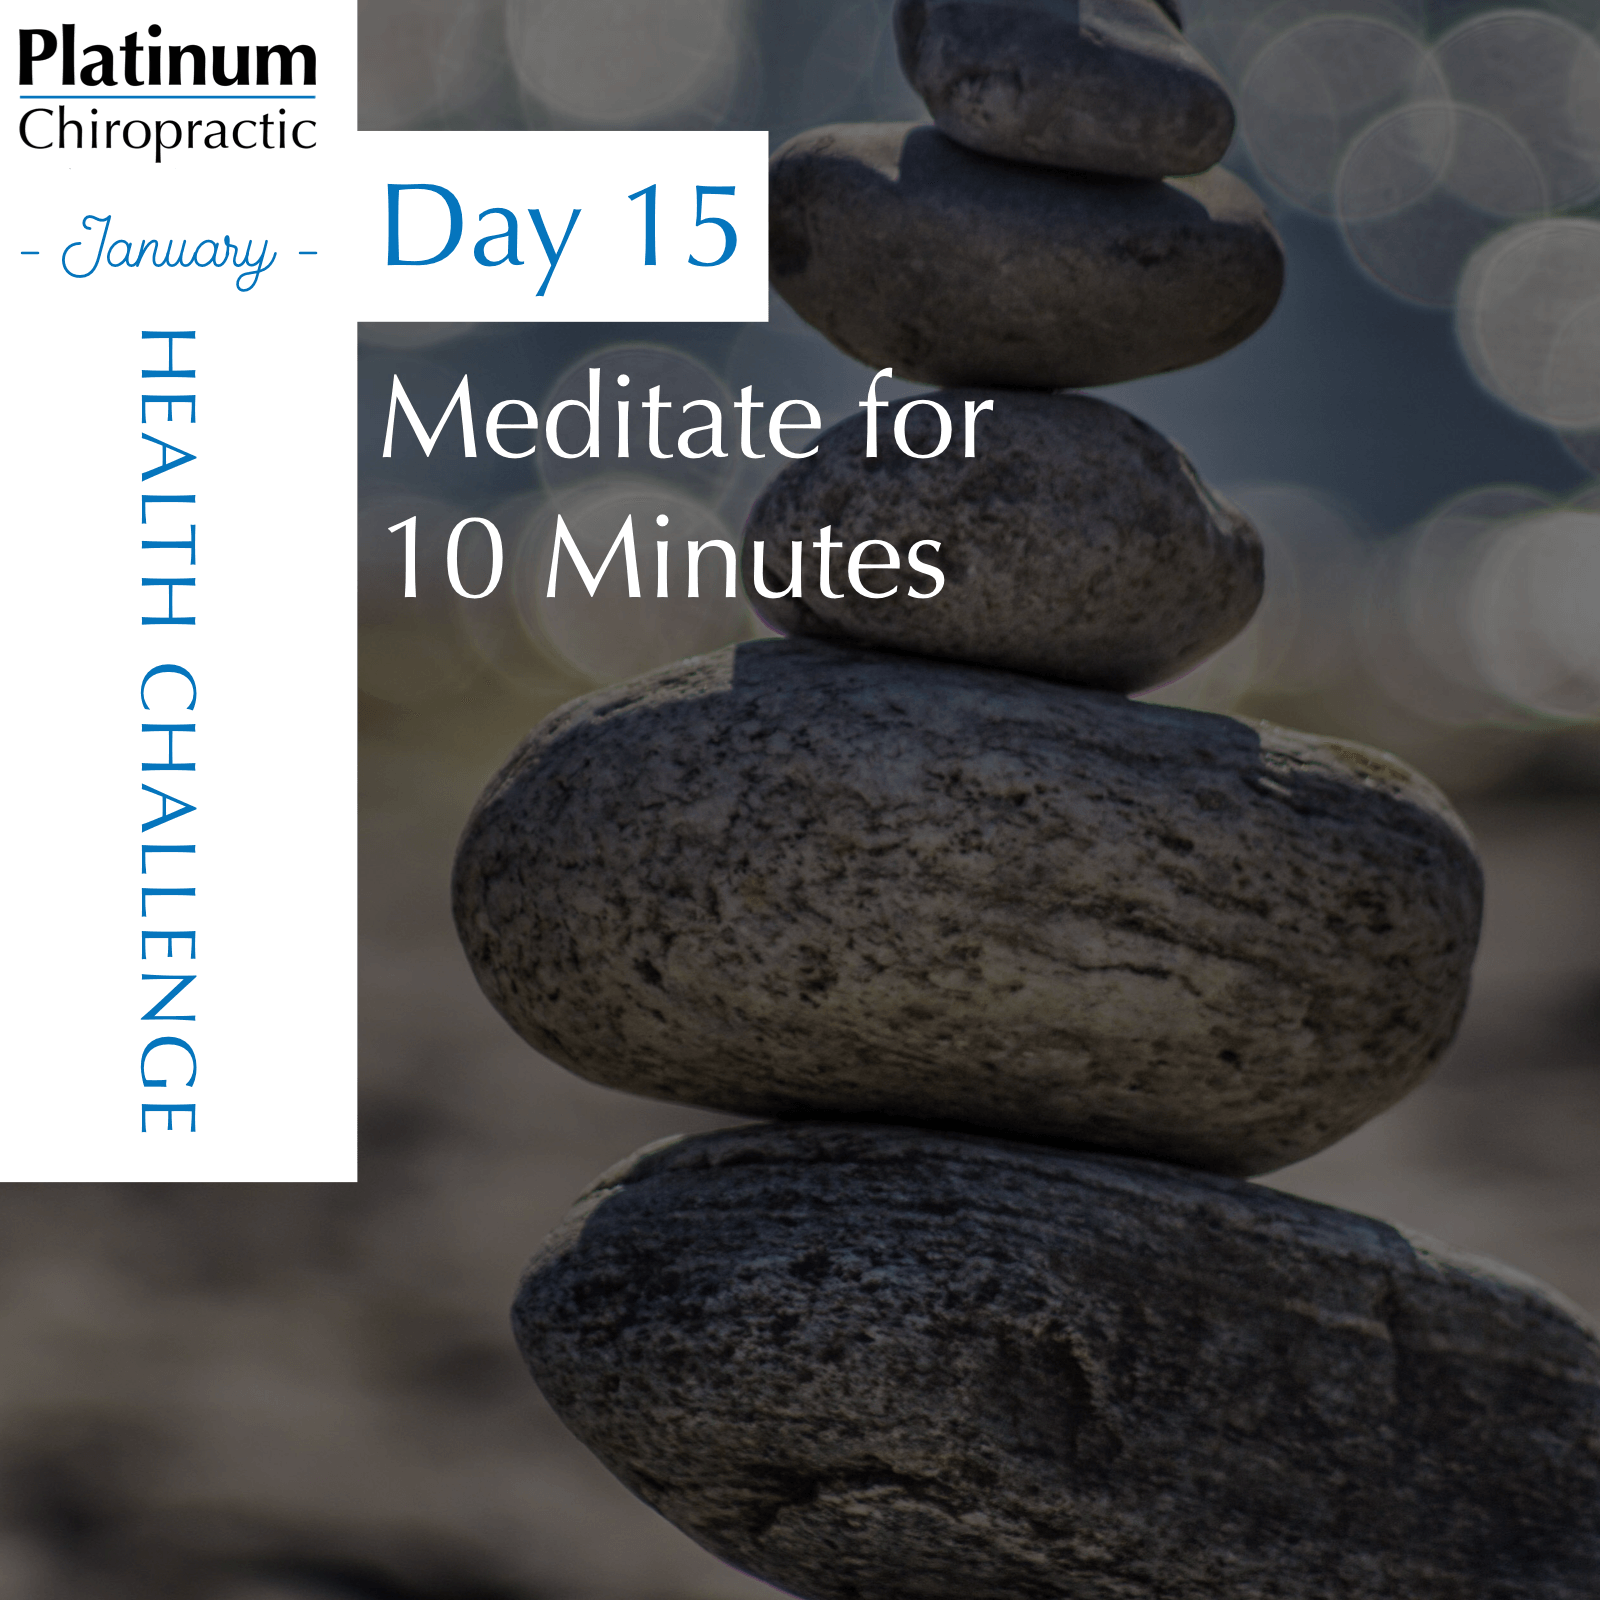 Meditation Tips:  1) Sit how you are comfortable. Find a posture you can stay in for 10 minutes. That might mean sitting on the floor, or in a chair. However we recommend not laying down, as it tends to lead to falling asleep!  2) Try slowing your breathe. Breathe in for a count of 4, hold for a count of 4, exhale for a count of 4, hold for a count of 4. Repeat in sets of 4.